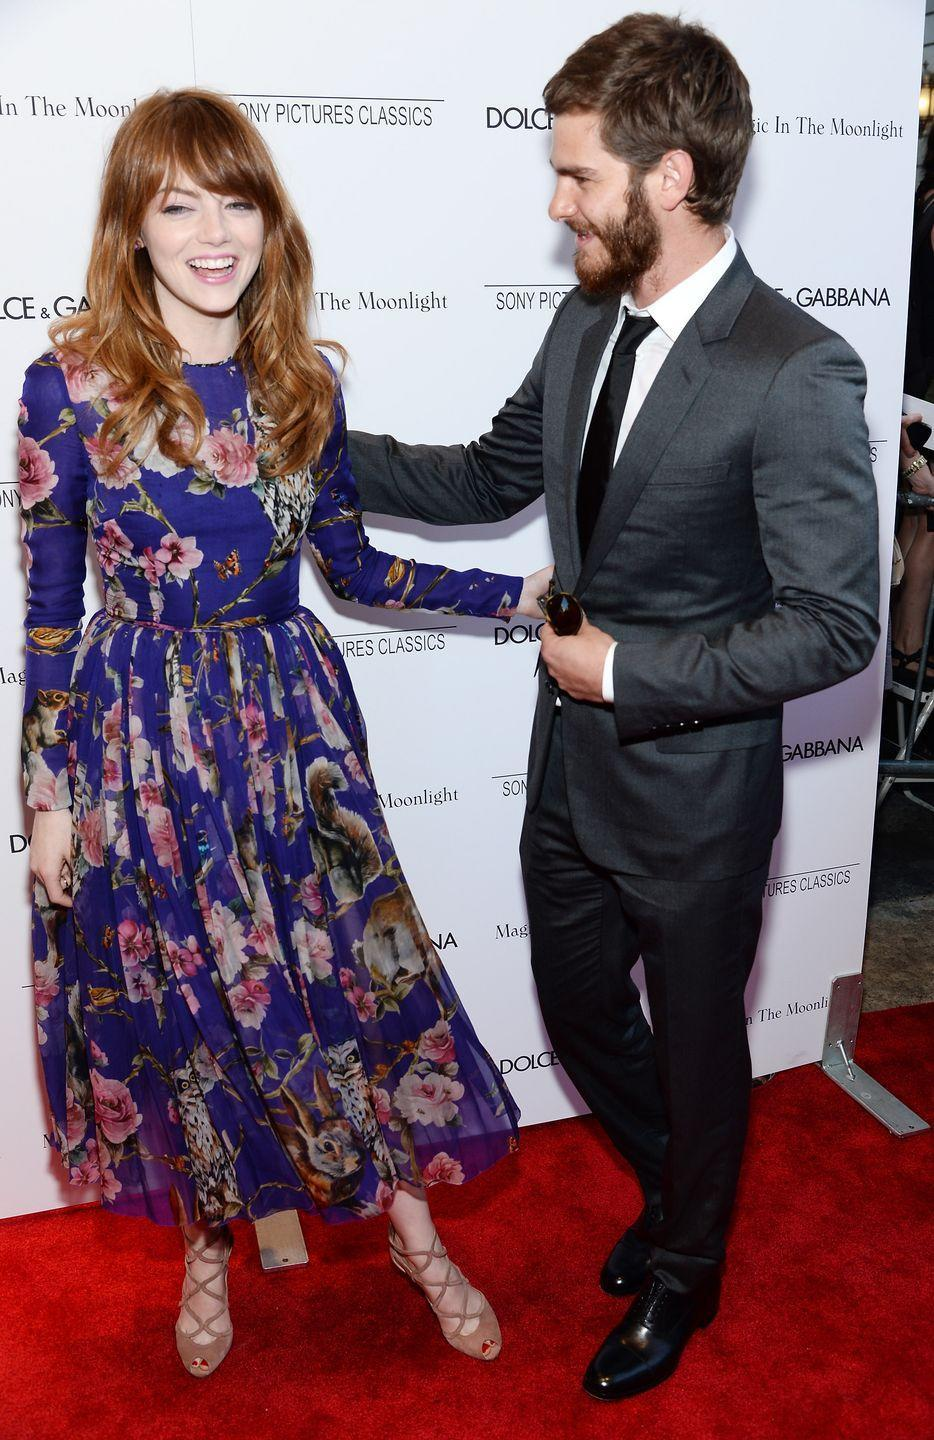 """<p>While rumors about a romance started in 2011, Stone and Garfield didn't go public with their relationship until March of 2012. They reportedly split in 2015. In May 2018, they were<a href=""""https://pagesix.com/2018/05/23/emma-stone-and-ex-beau-andrew-garfield-are-spotted-looking-cozy/"""" rel=""""nofollow noopener"""" target=""""_blank"""" data-ylk=""""slk:out together"""" class=""""link rapid-noclick-resp""""> out together </a>in New York City. Stone is<a href=""""https://pagesix.com/2019/12/09/emma-stone-and-fiance-dave-mccary-step-out-after-getting-engaged/"""" rel=""""nofollow noopener"""" target=""""_blank"""" data-ylk=""""slk:now engaged to Dave McCary"""" class=""""link rapid-noclick-resp""""> now engaged to Dave McCary</a>. </p>"""